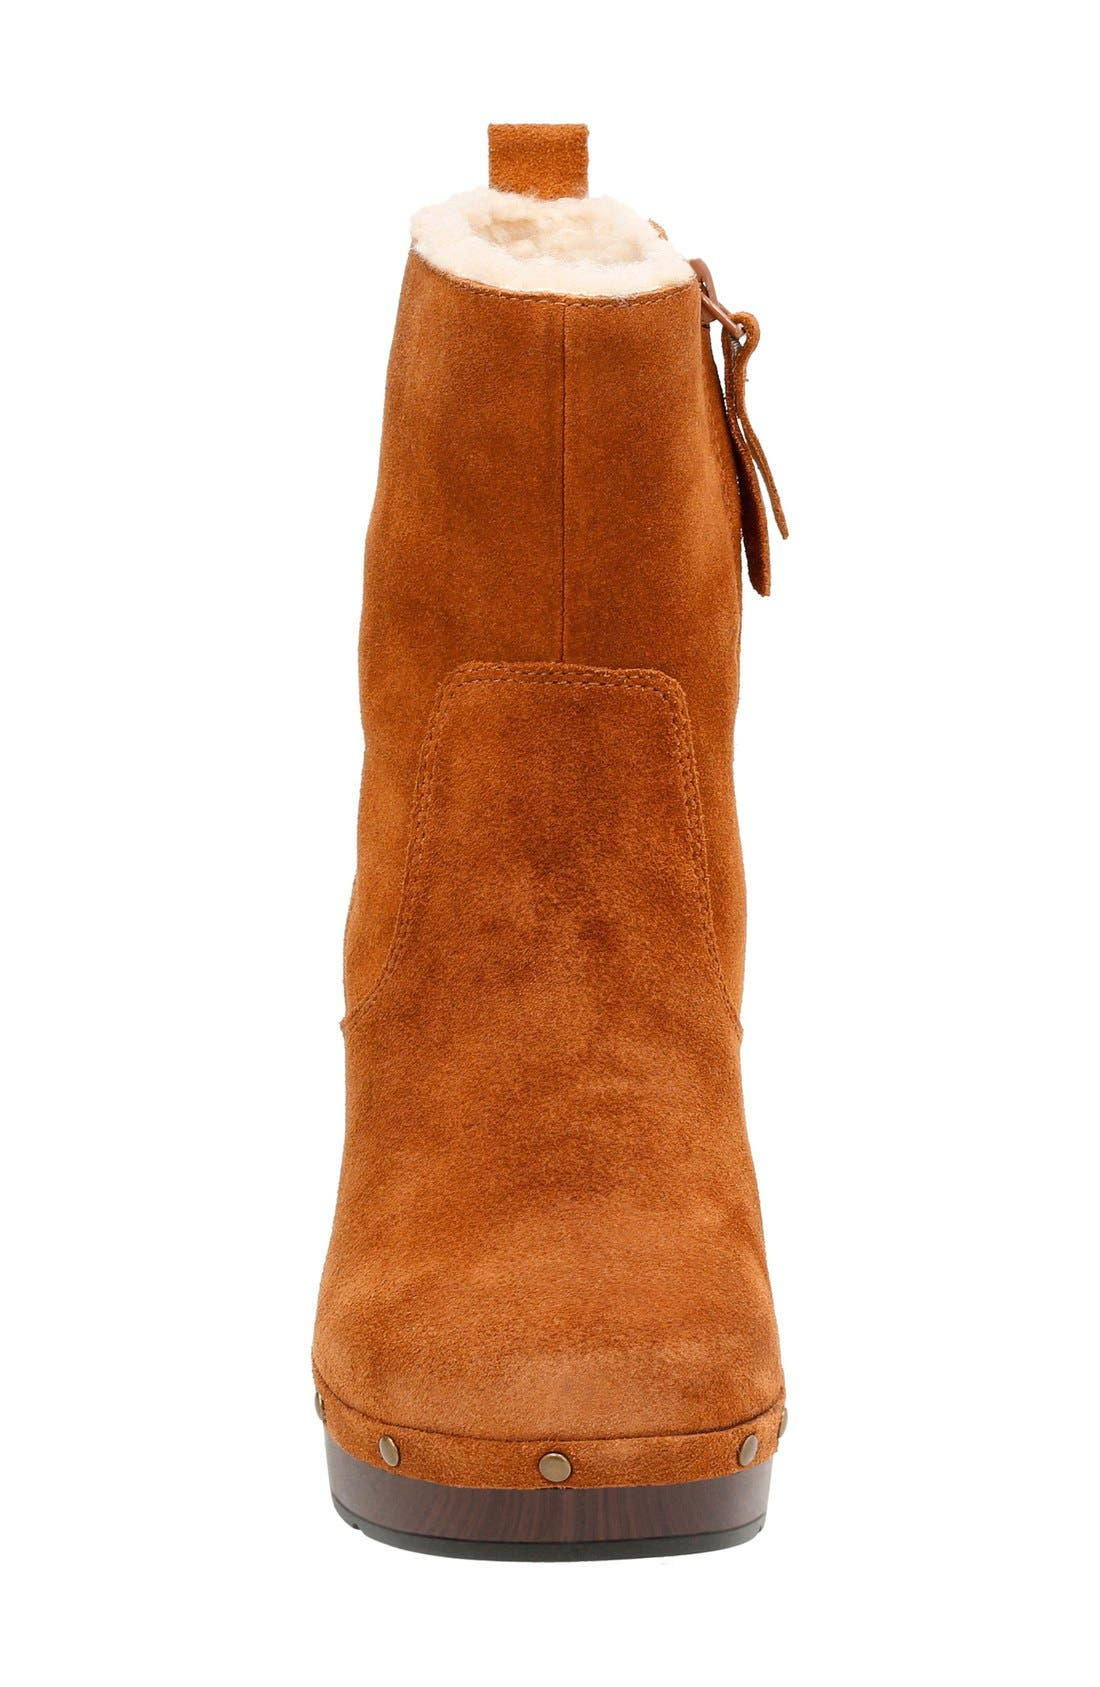 'Ledella Abby' Bootie,                             Alternate thumbnail 3, color,                             Tan Suede